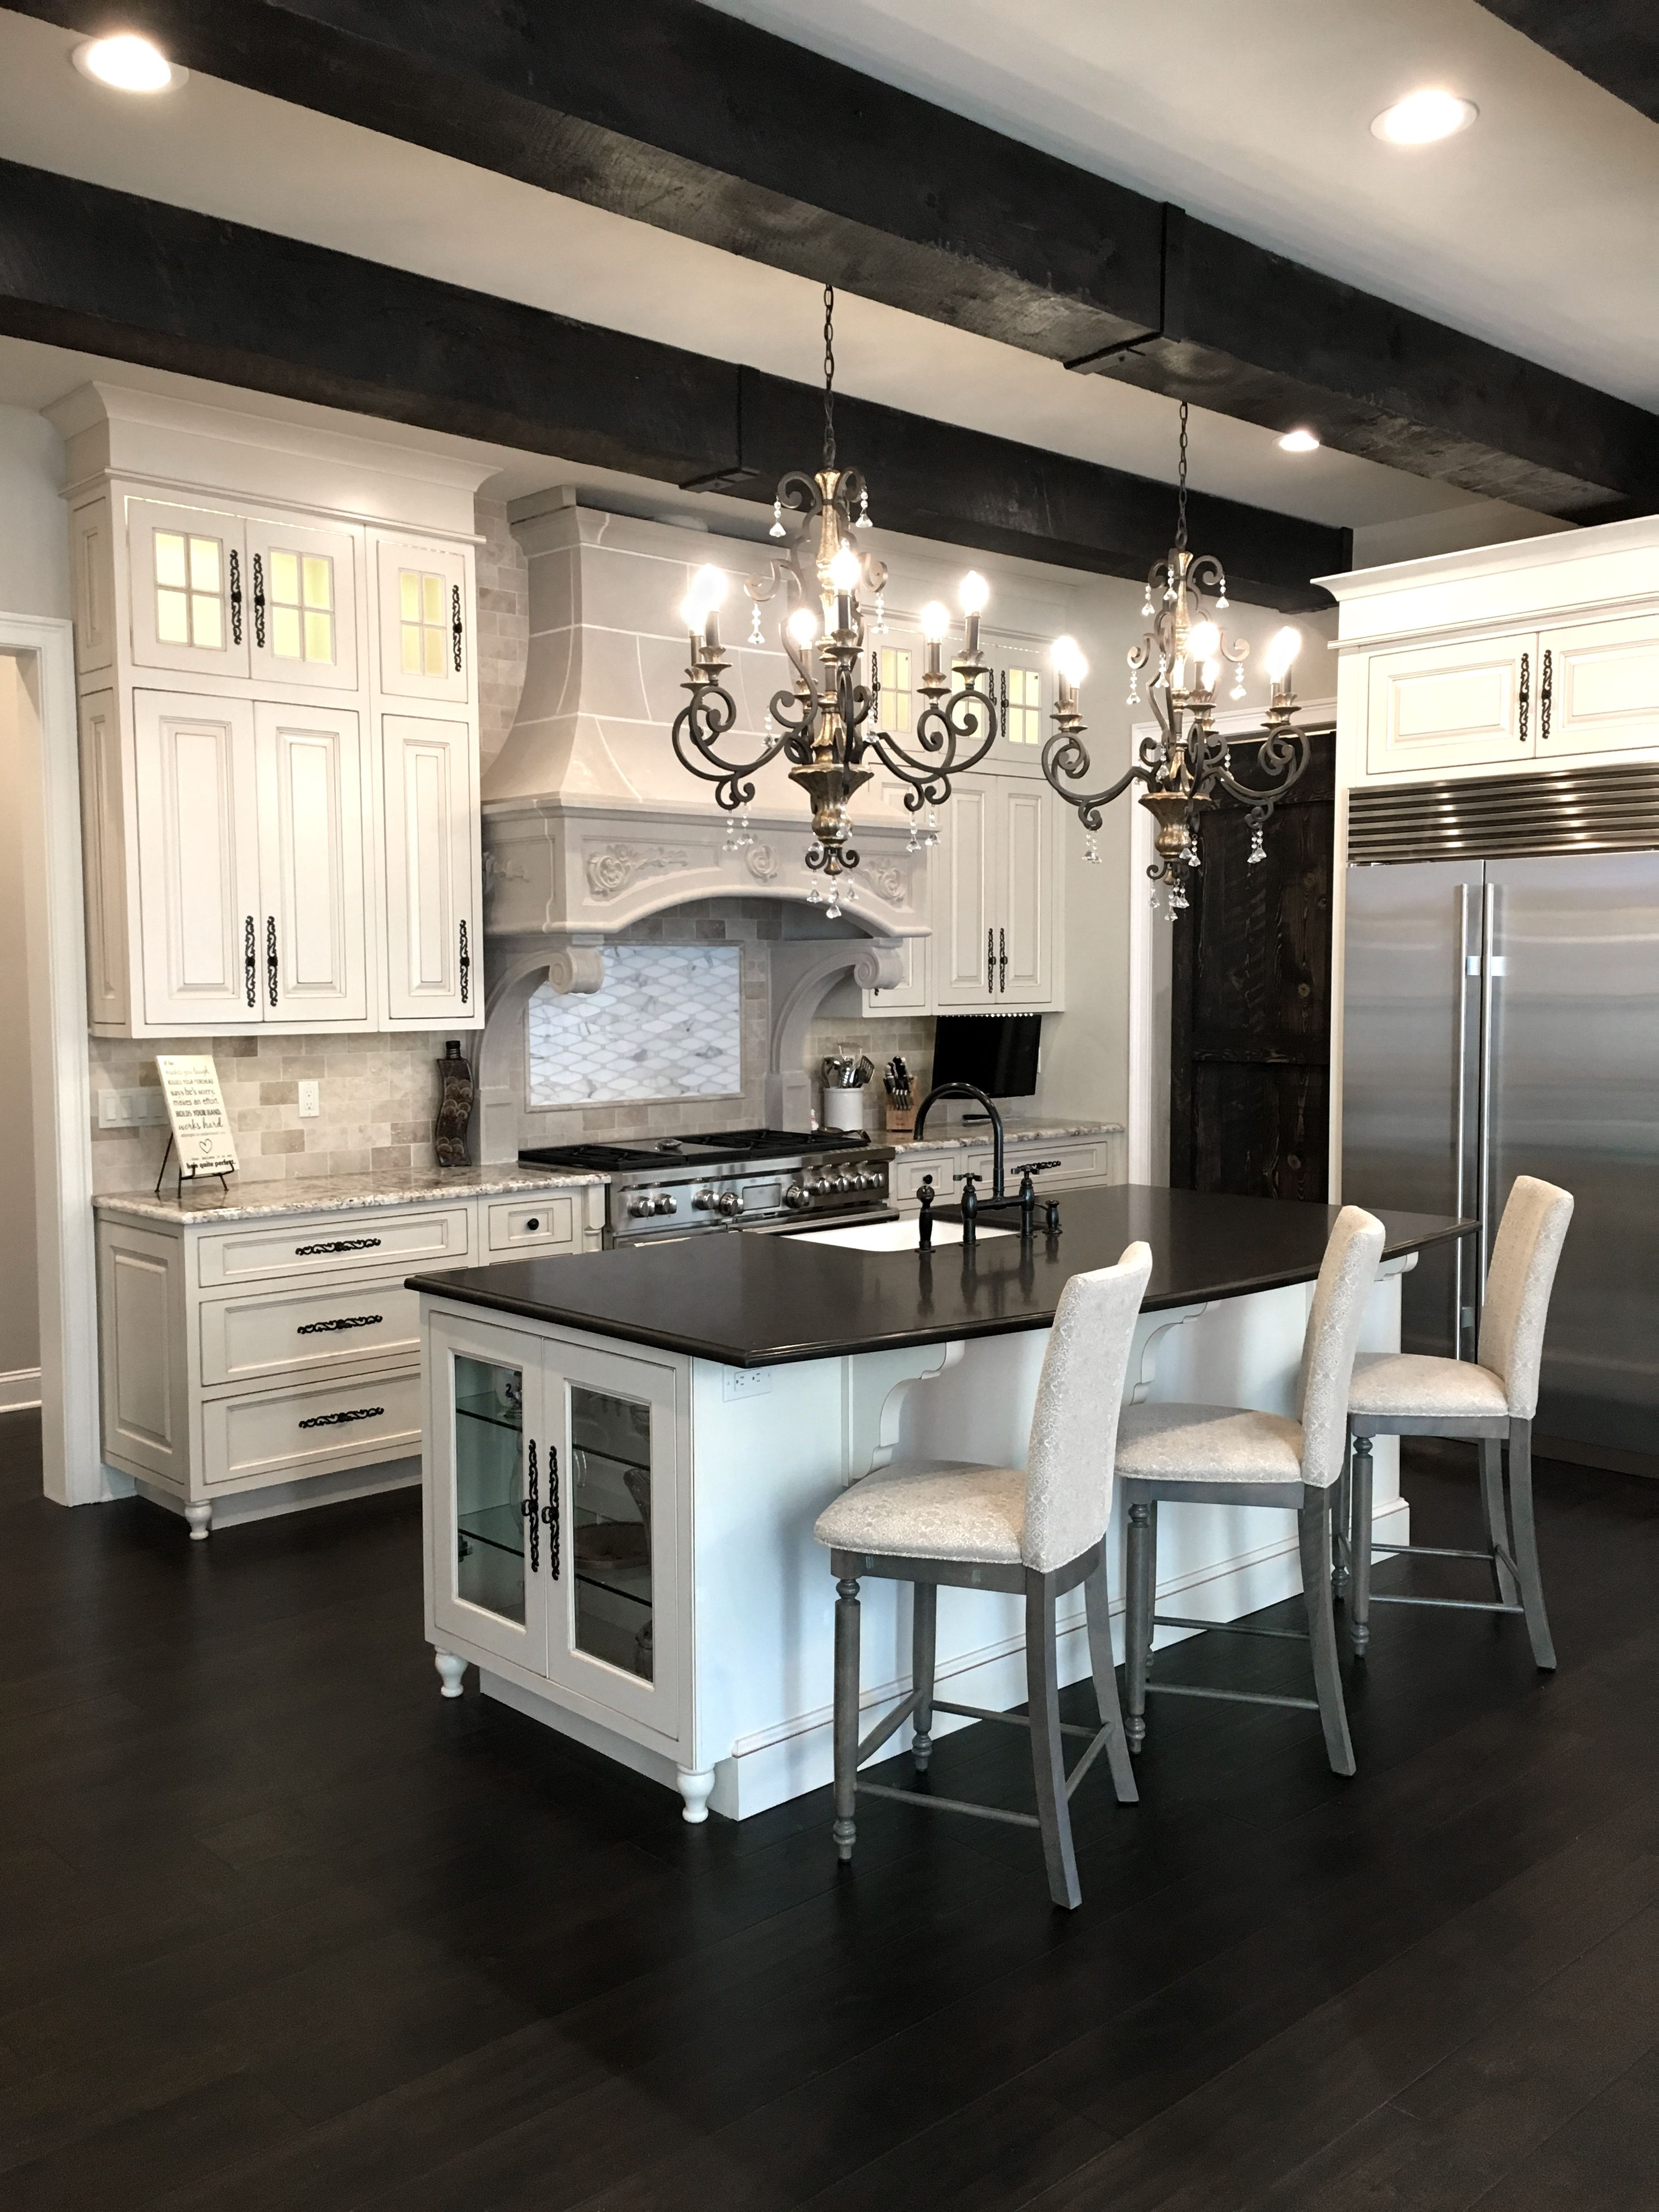 French Country Kitchen Wood Beam Ceiling Island